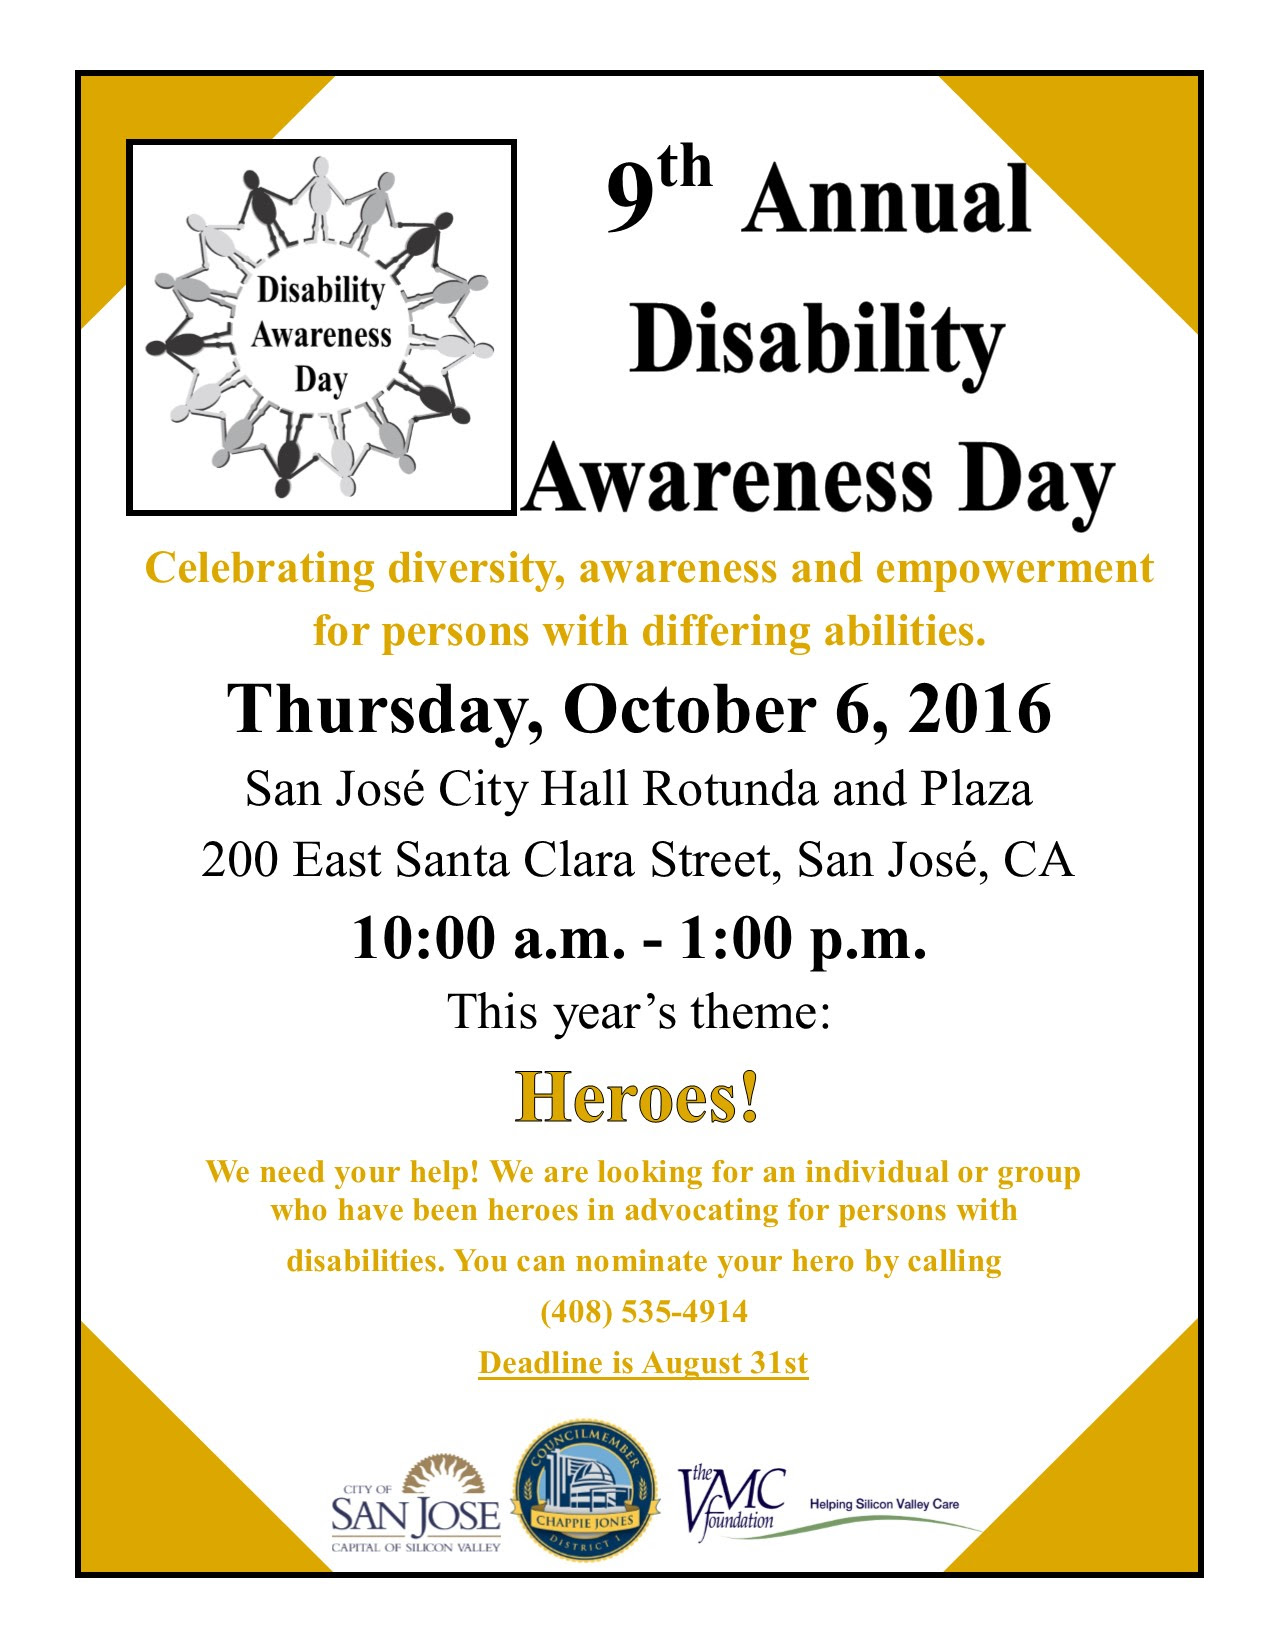 9th Annual Disability Awareness Day